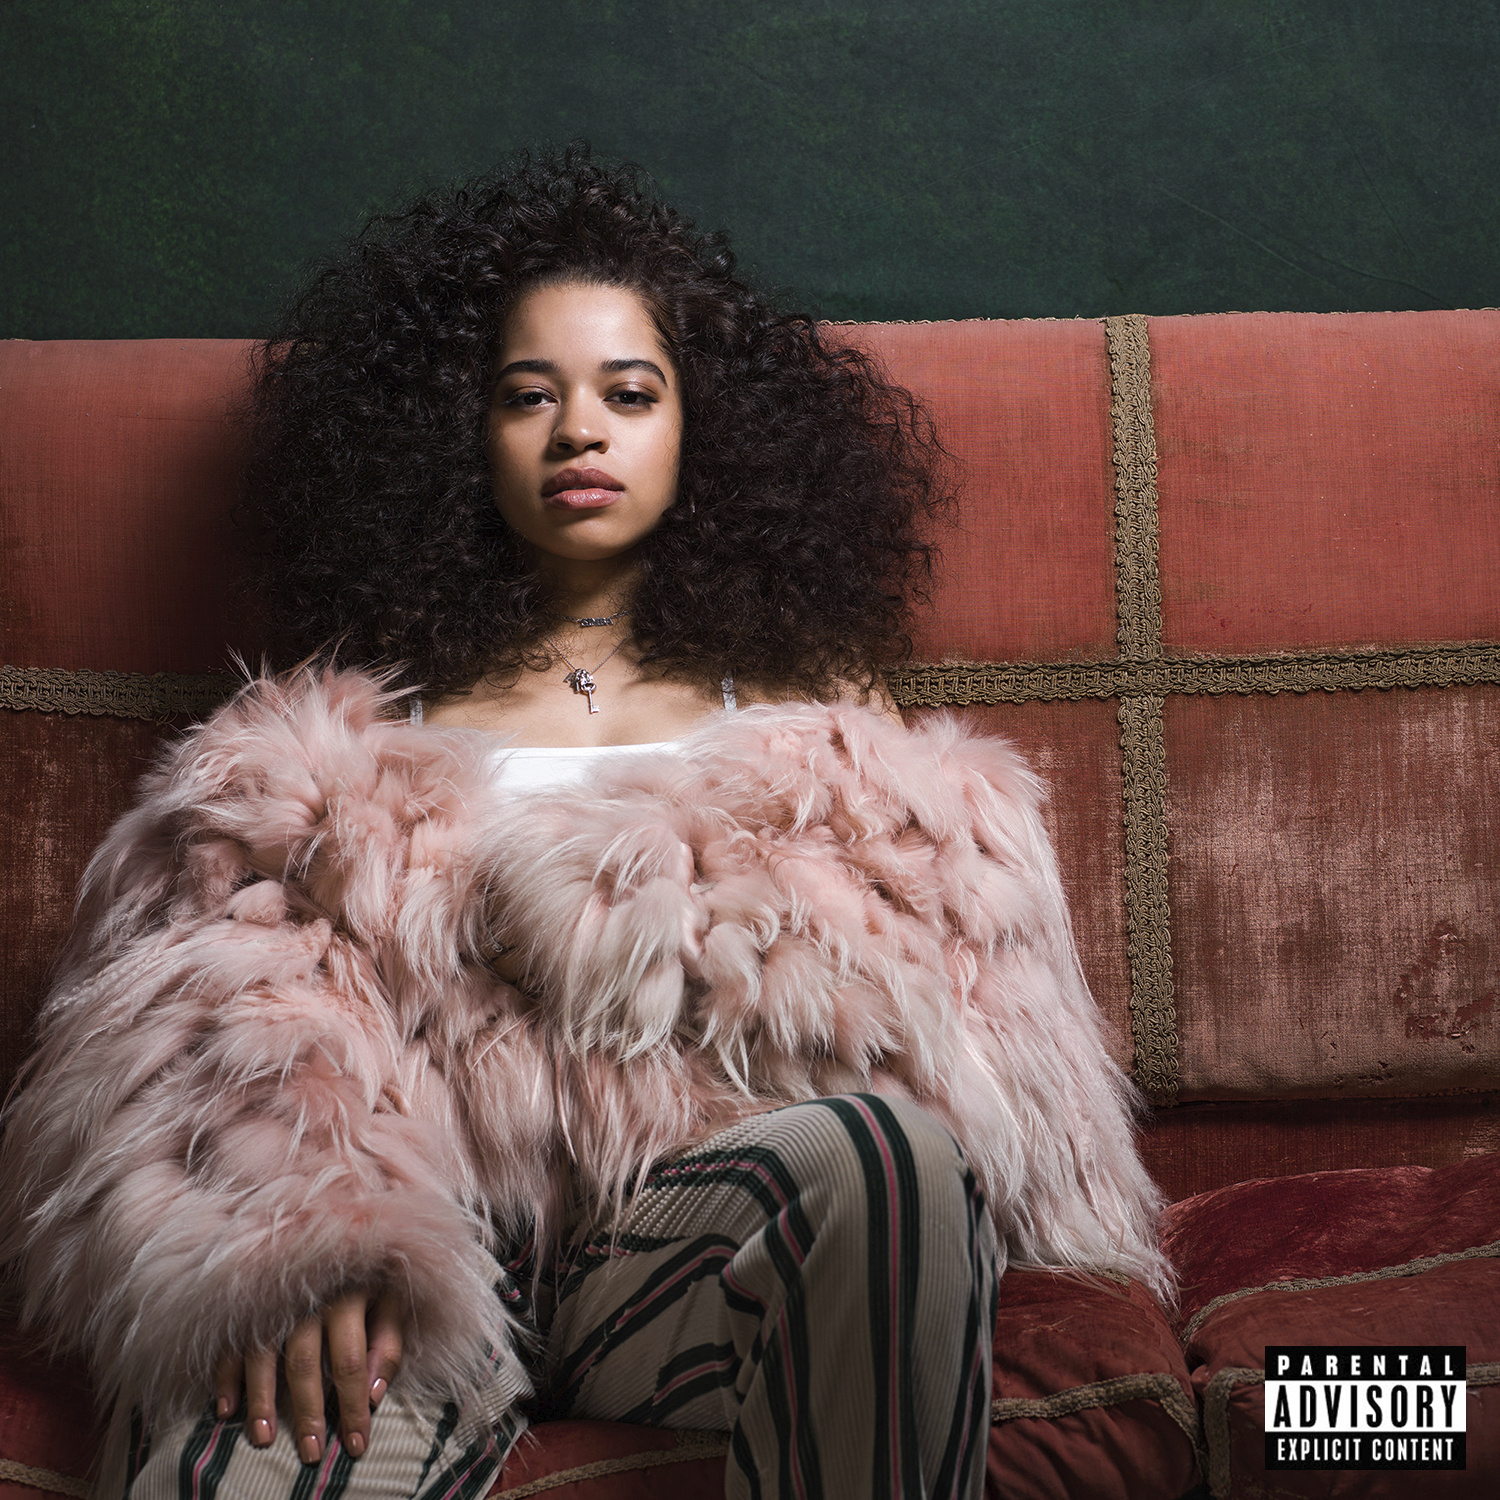 ella mai album cover art